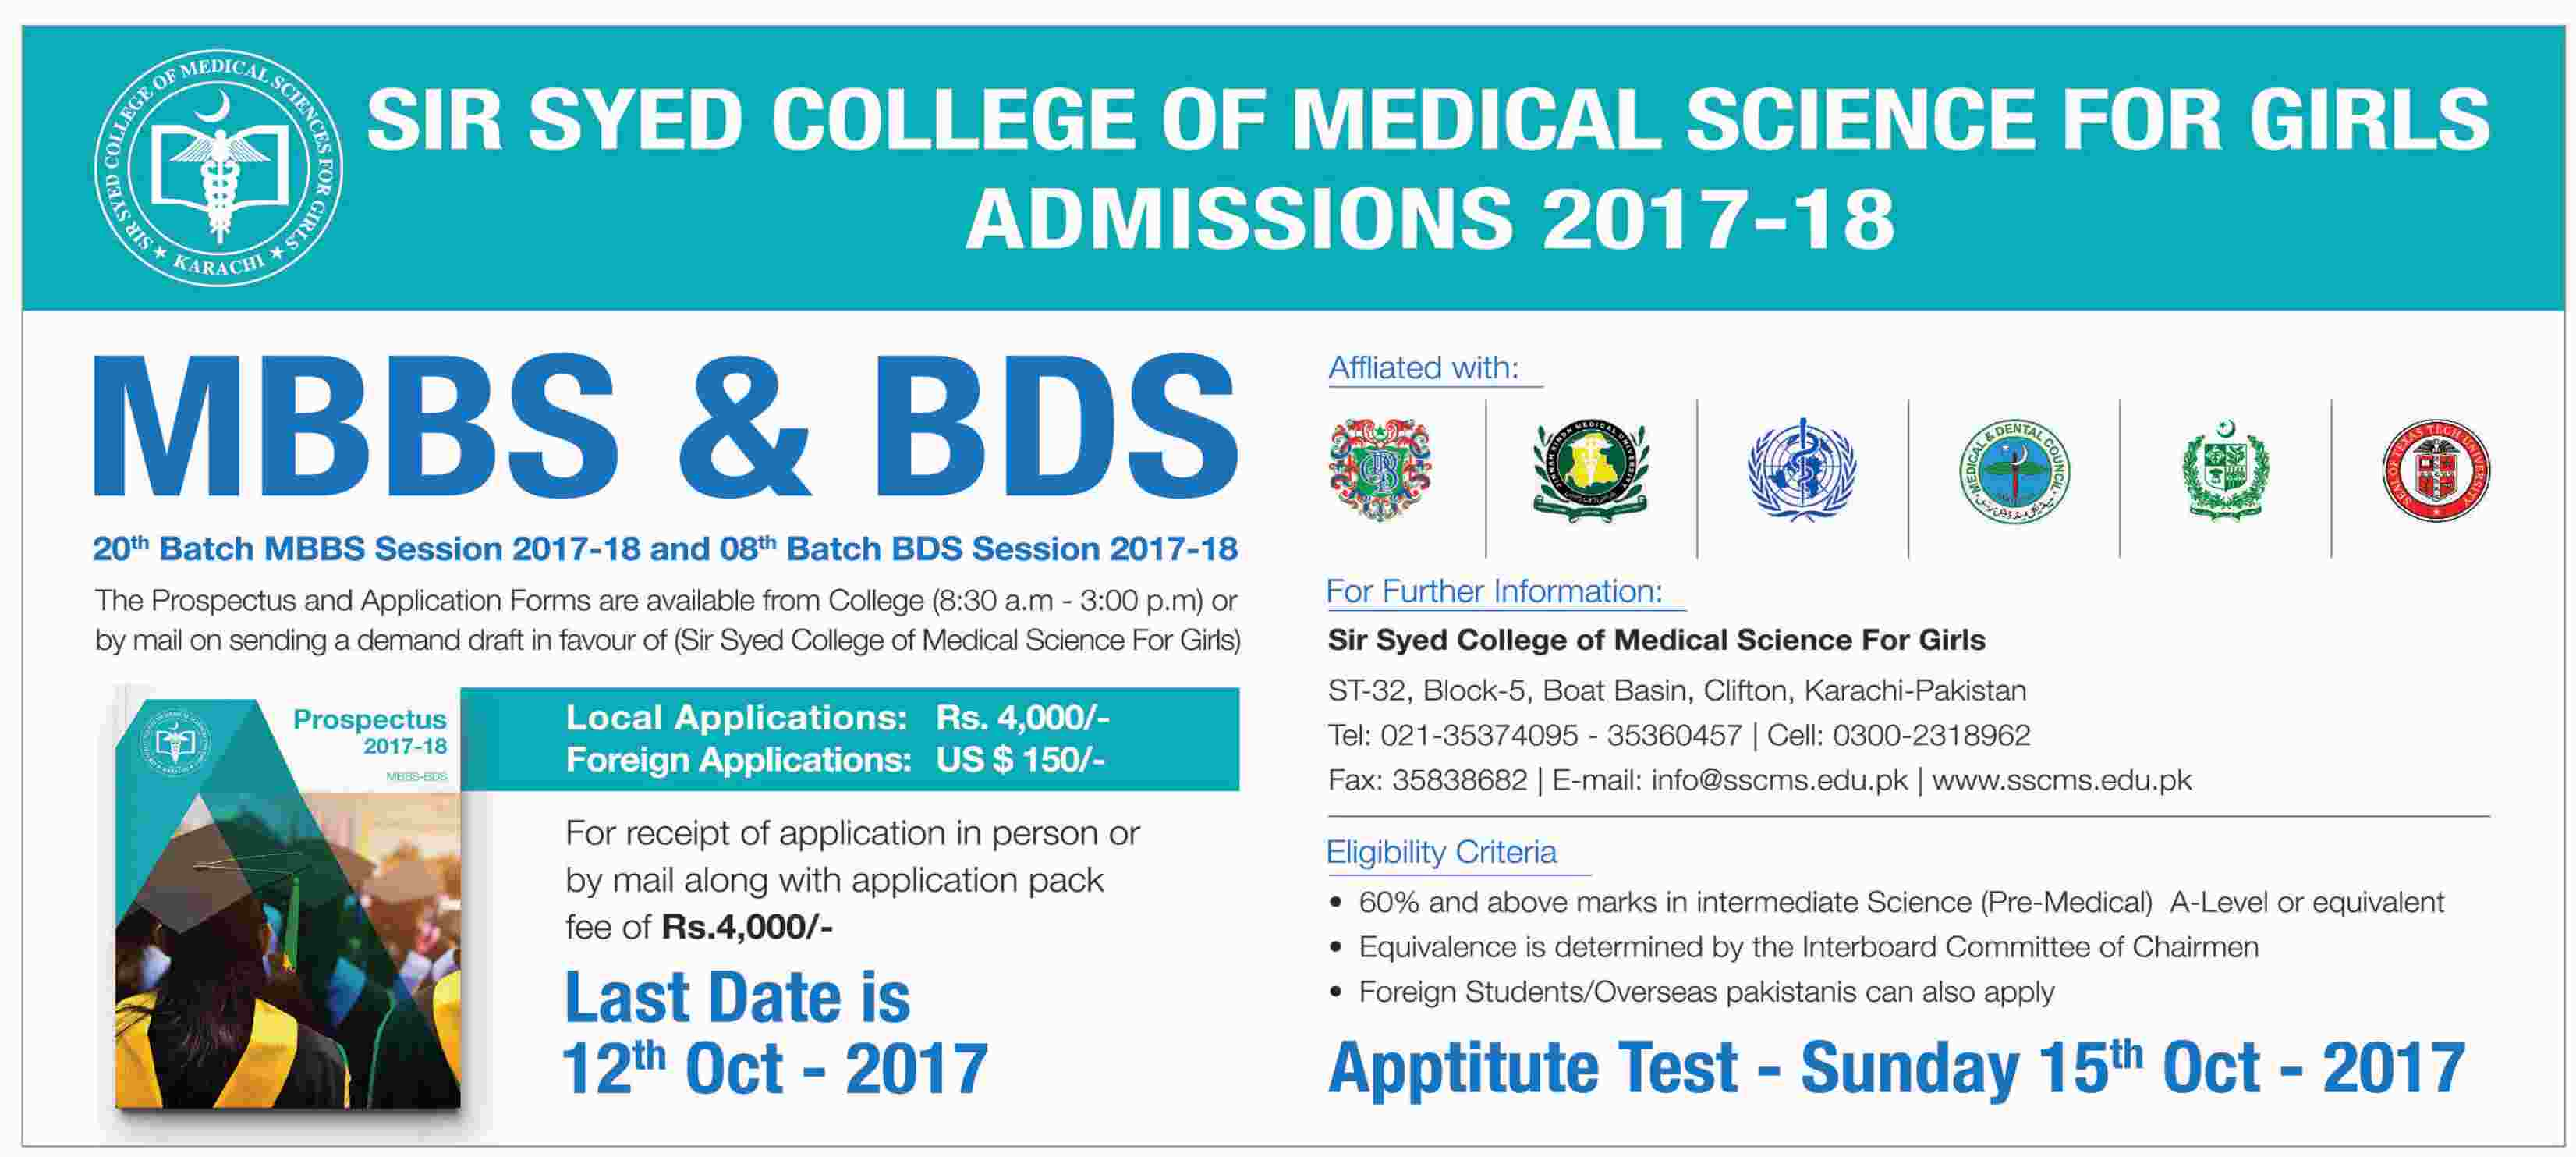 Sir Syed College Of Medical Sciences For Girls MBBS, BDS Admission 2017-2018